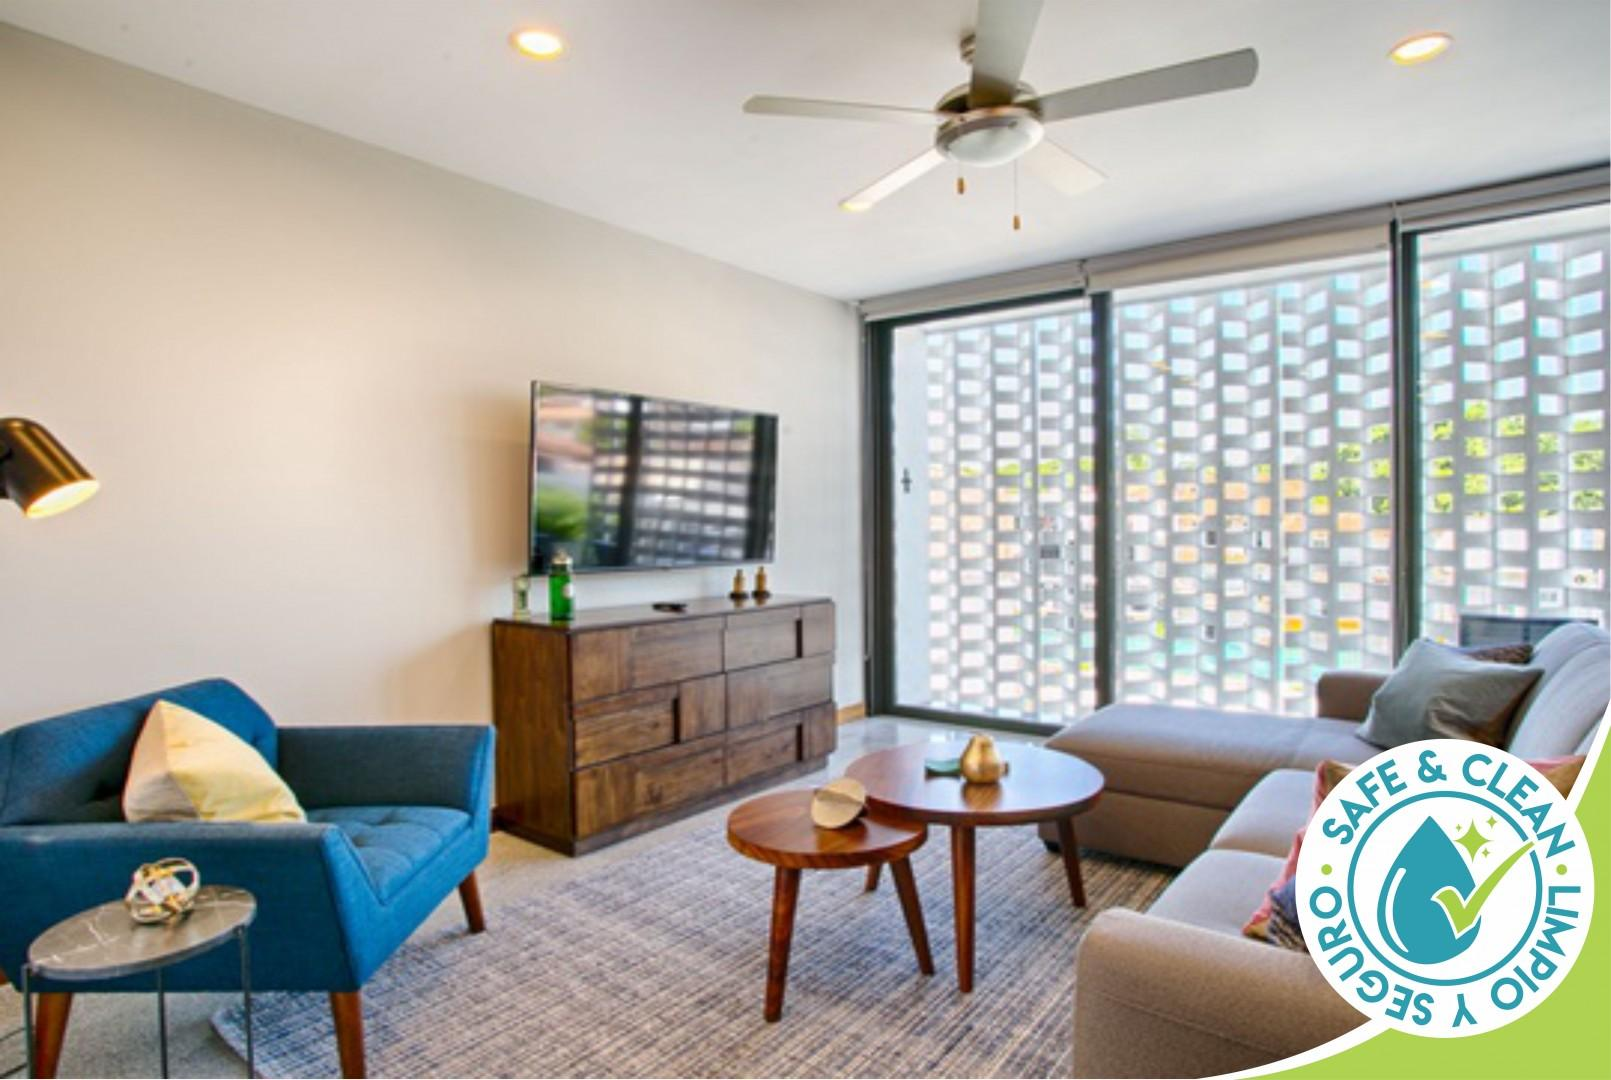 Chic, Spacious Condo | Great Walkability, Pool, Gym, Rooftop Views